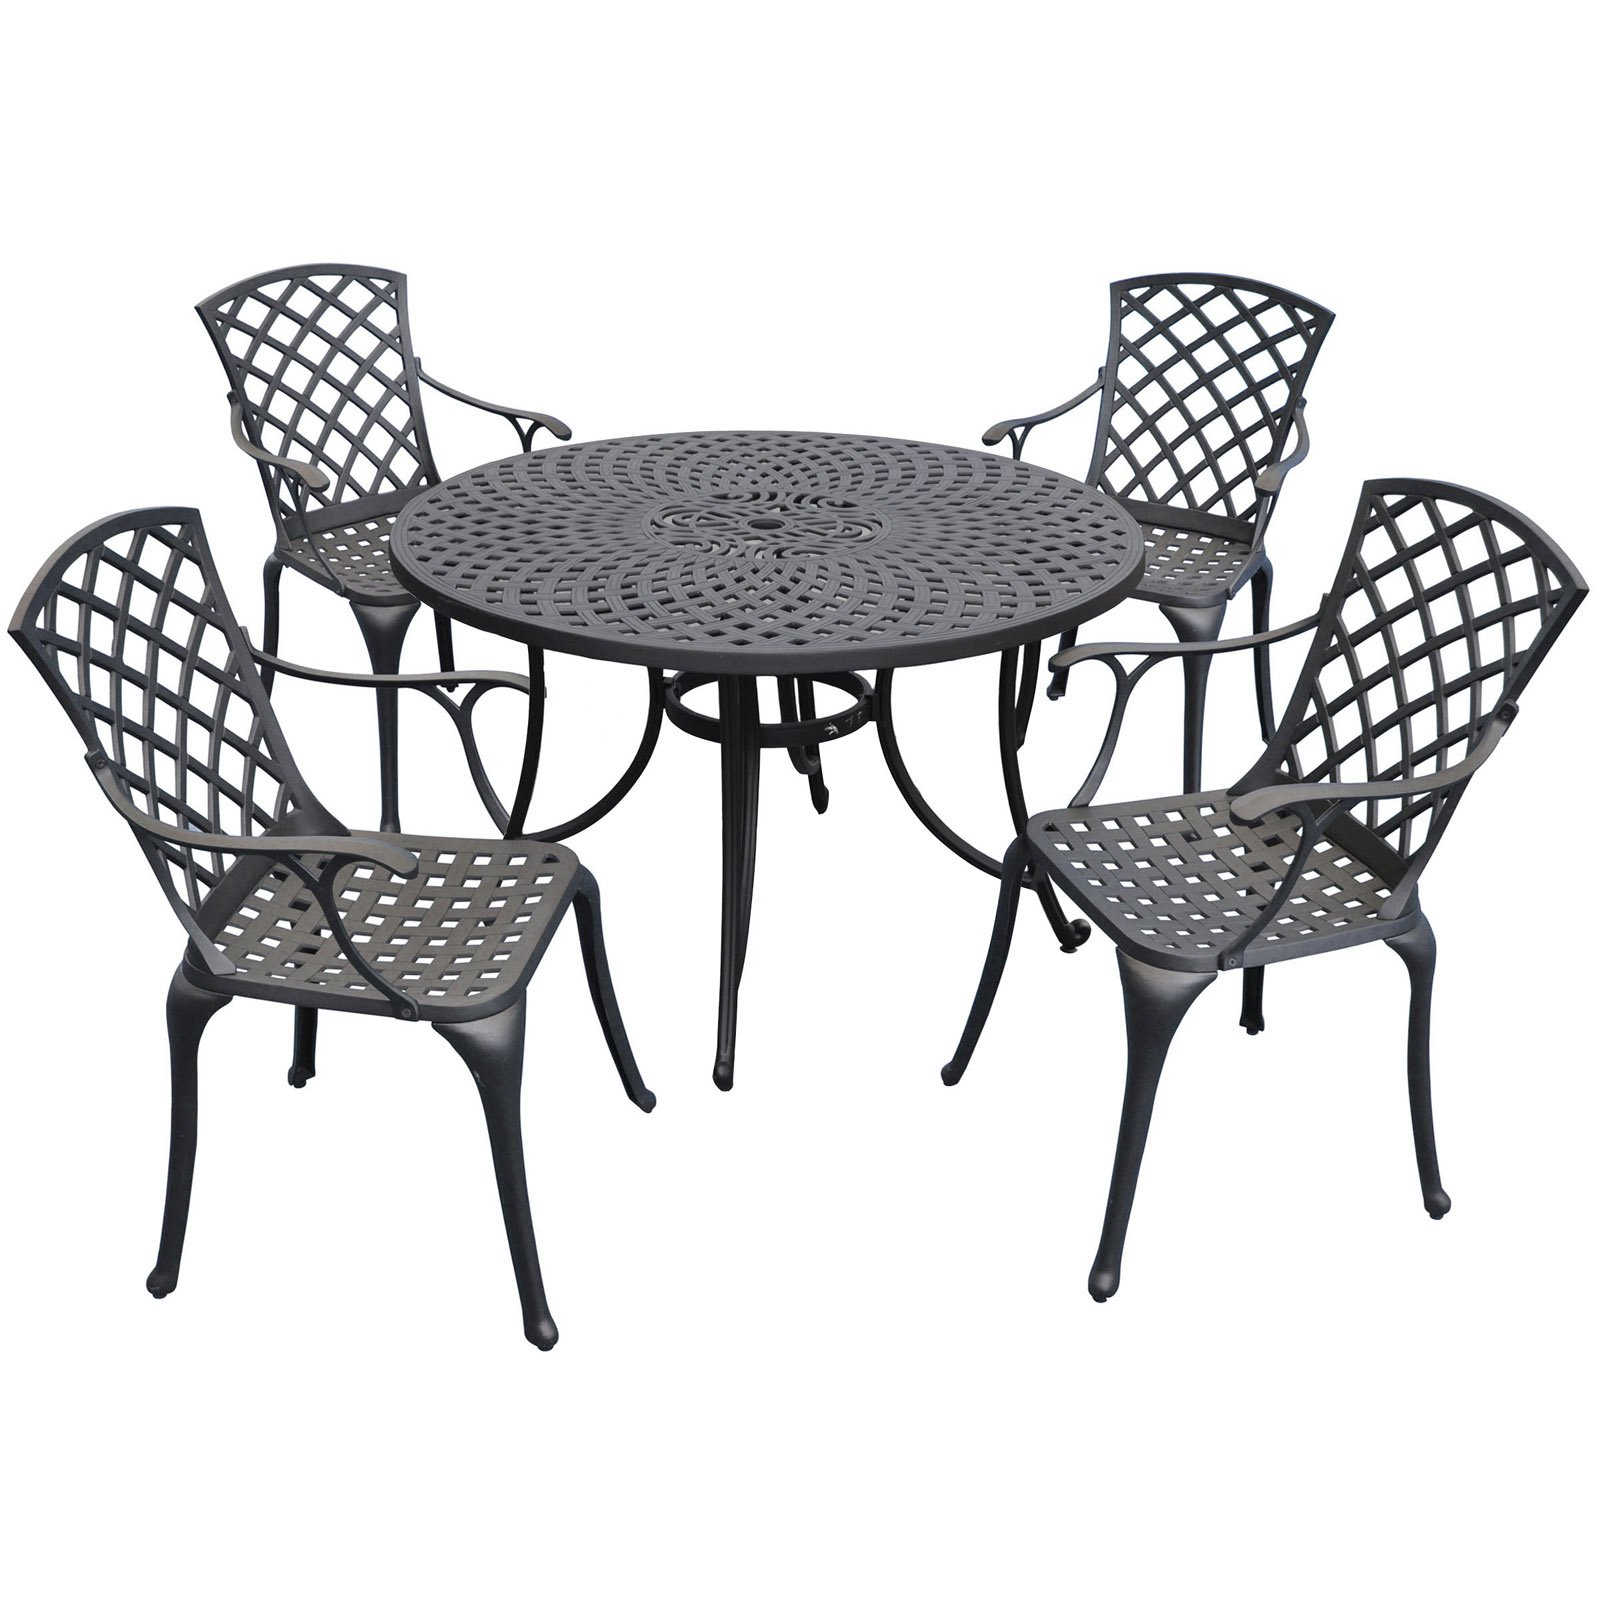 Crosley Sedona 48 in. 5 Piece Cast Aluminum Outdoor Dining Set with High Back Arm Chairs